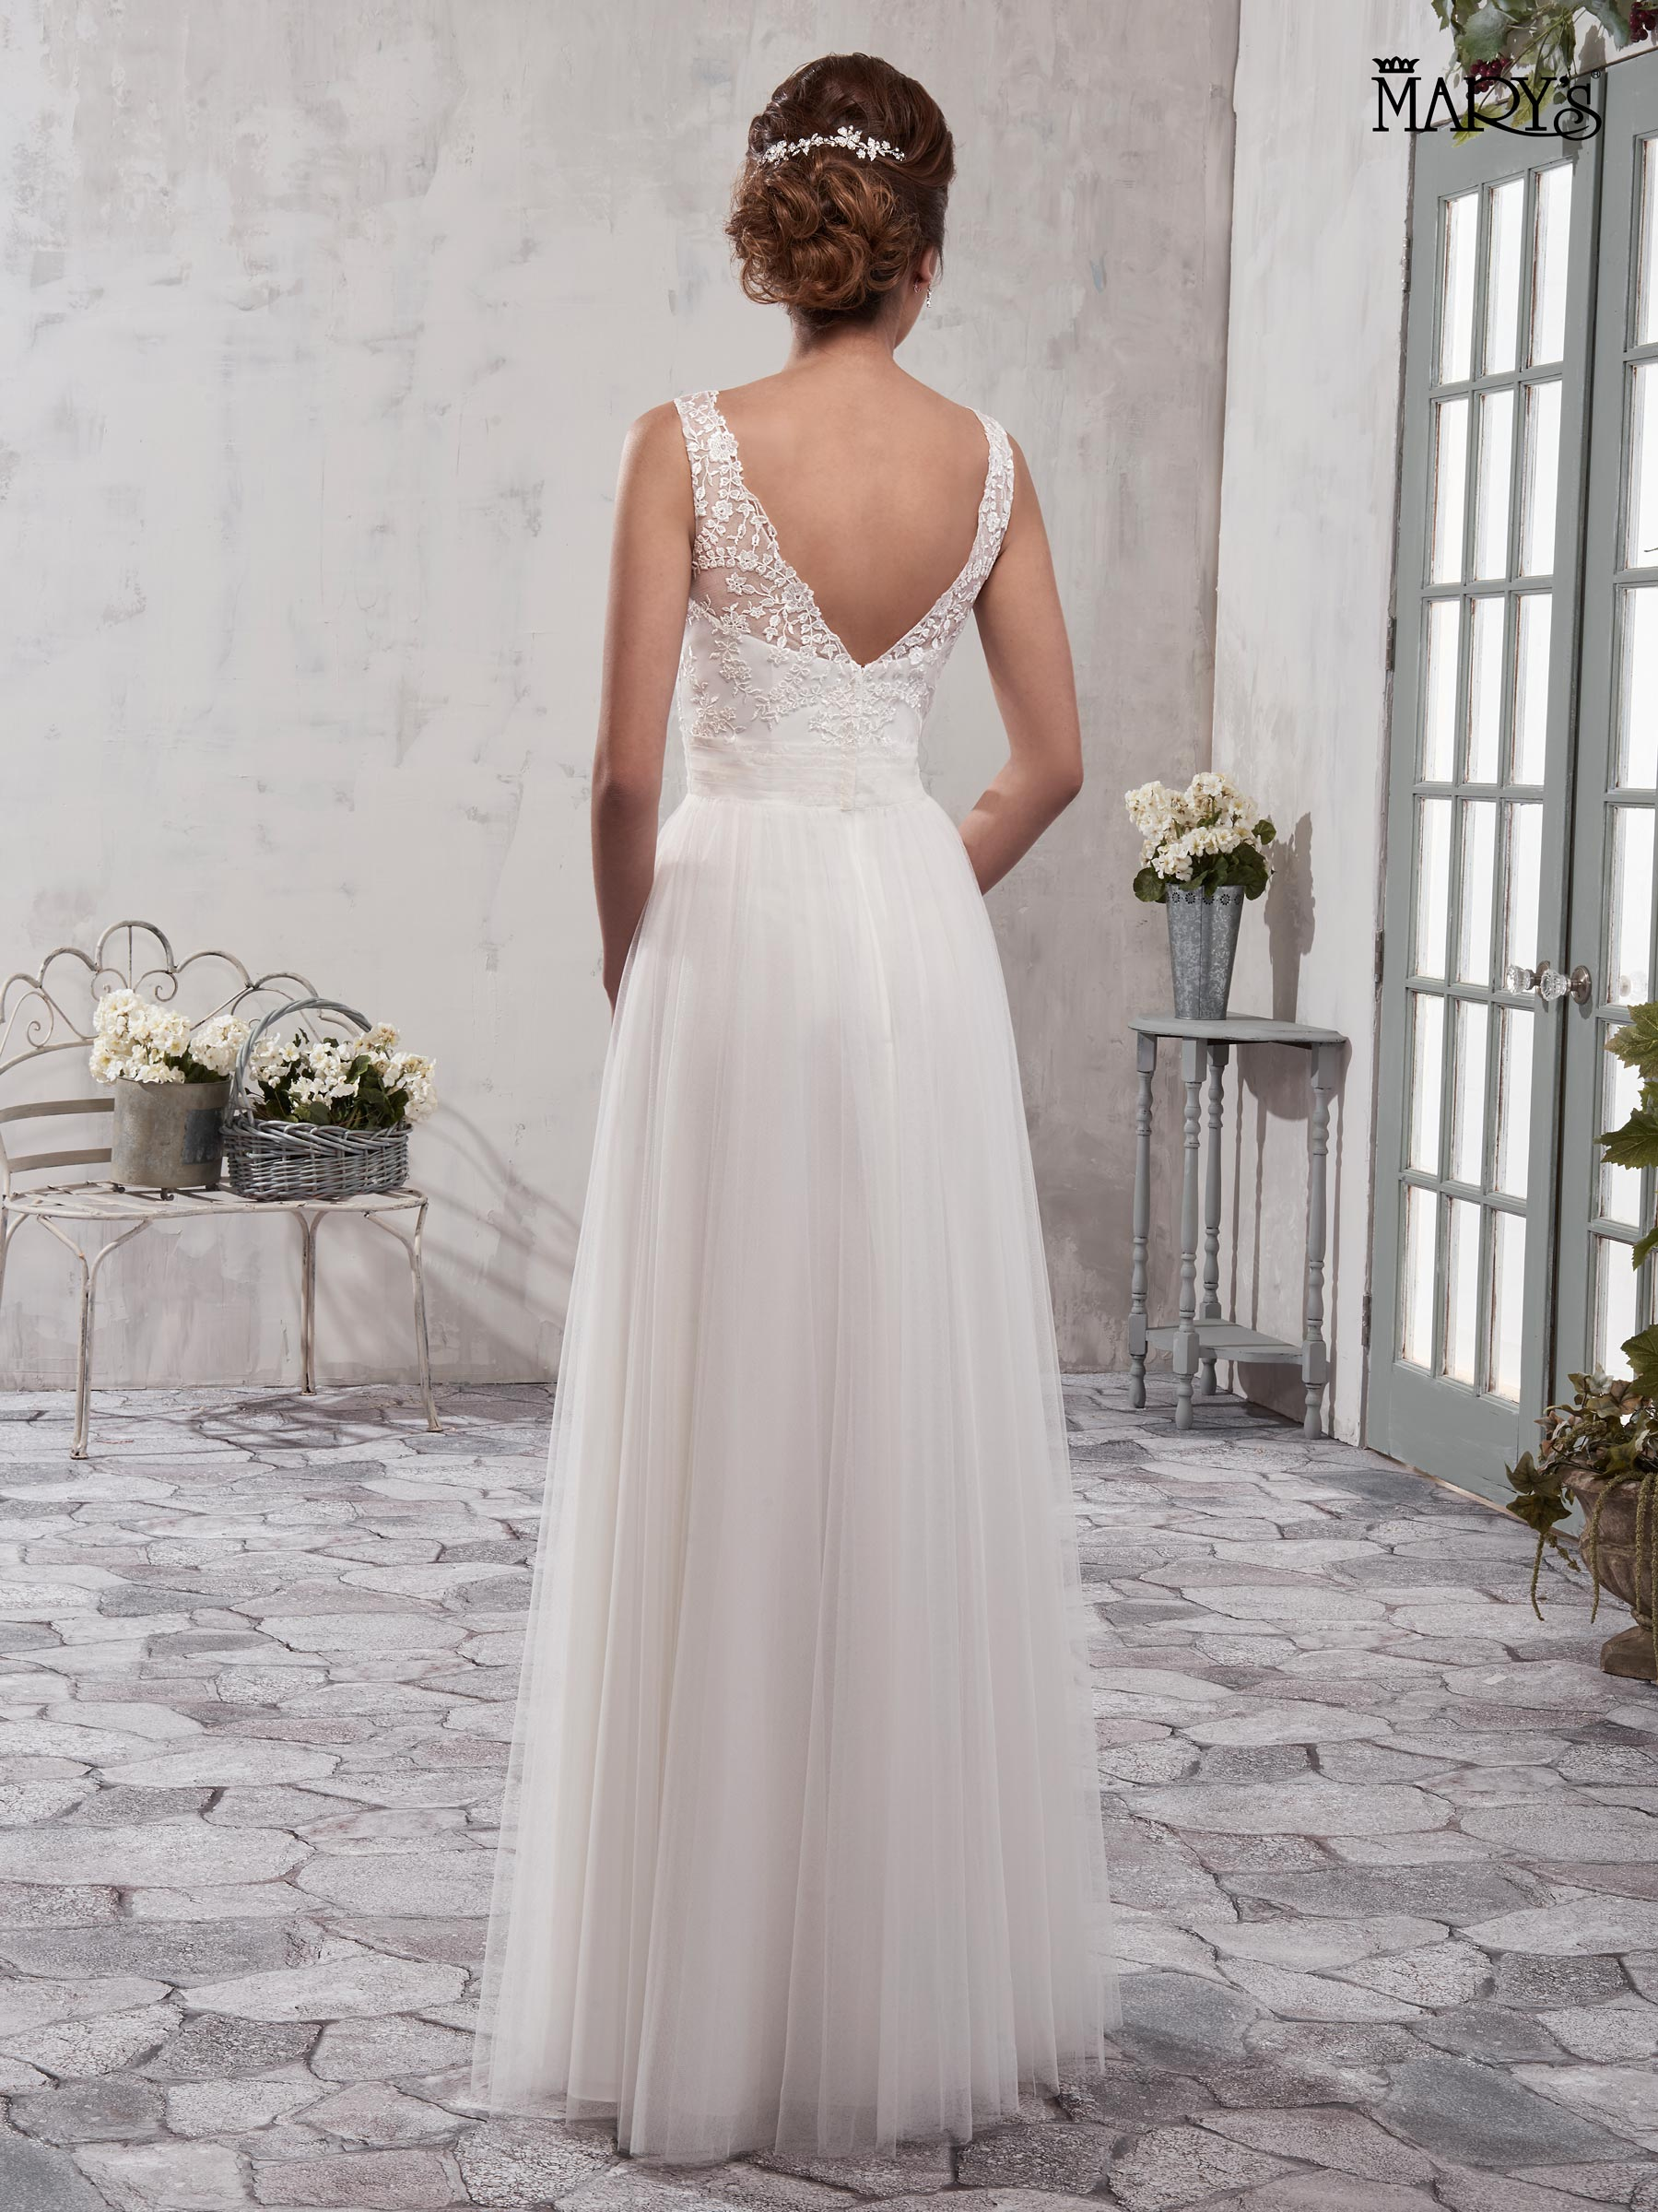 Bridal Wedding Dresses | Mary's | Style - MB1008